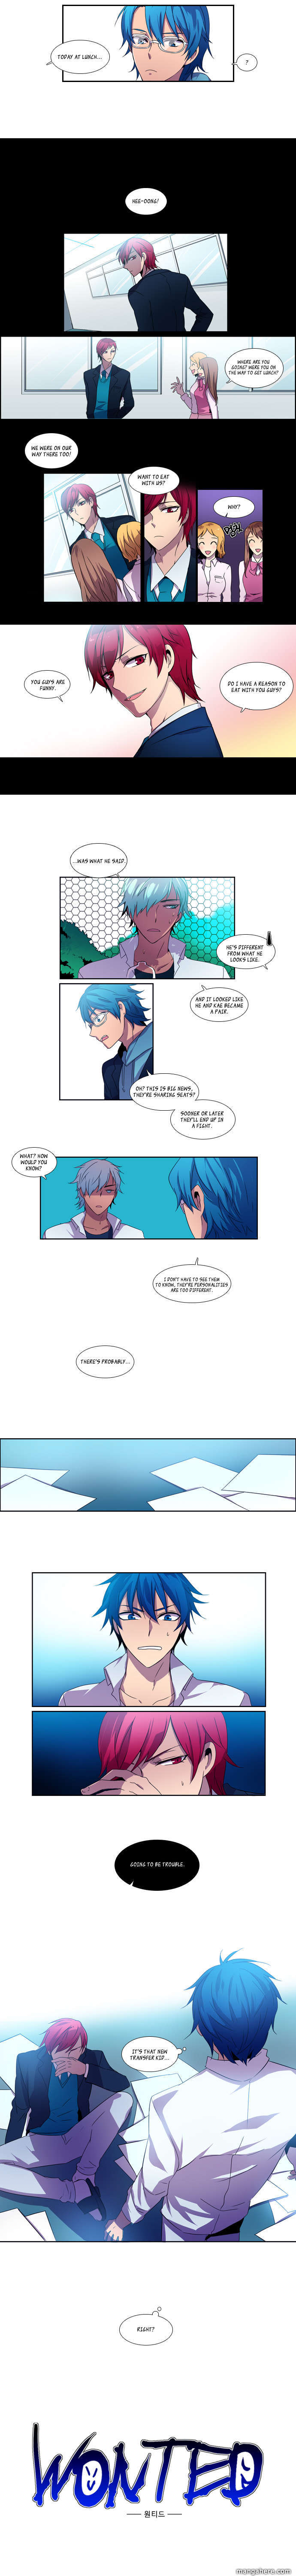 Wonted 2 Page 2